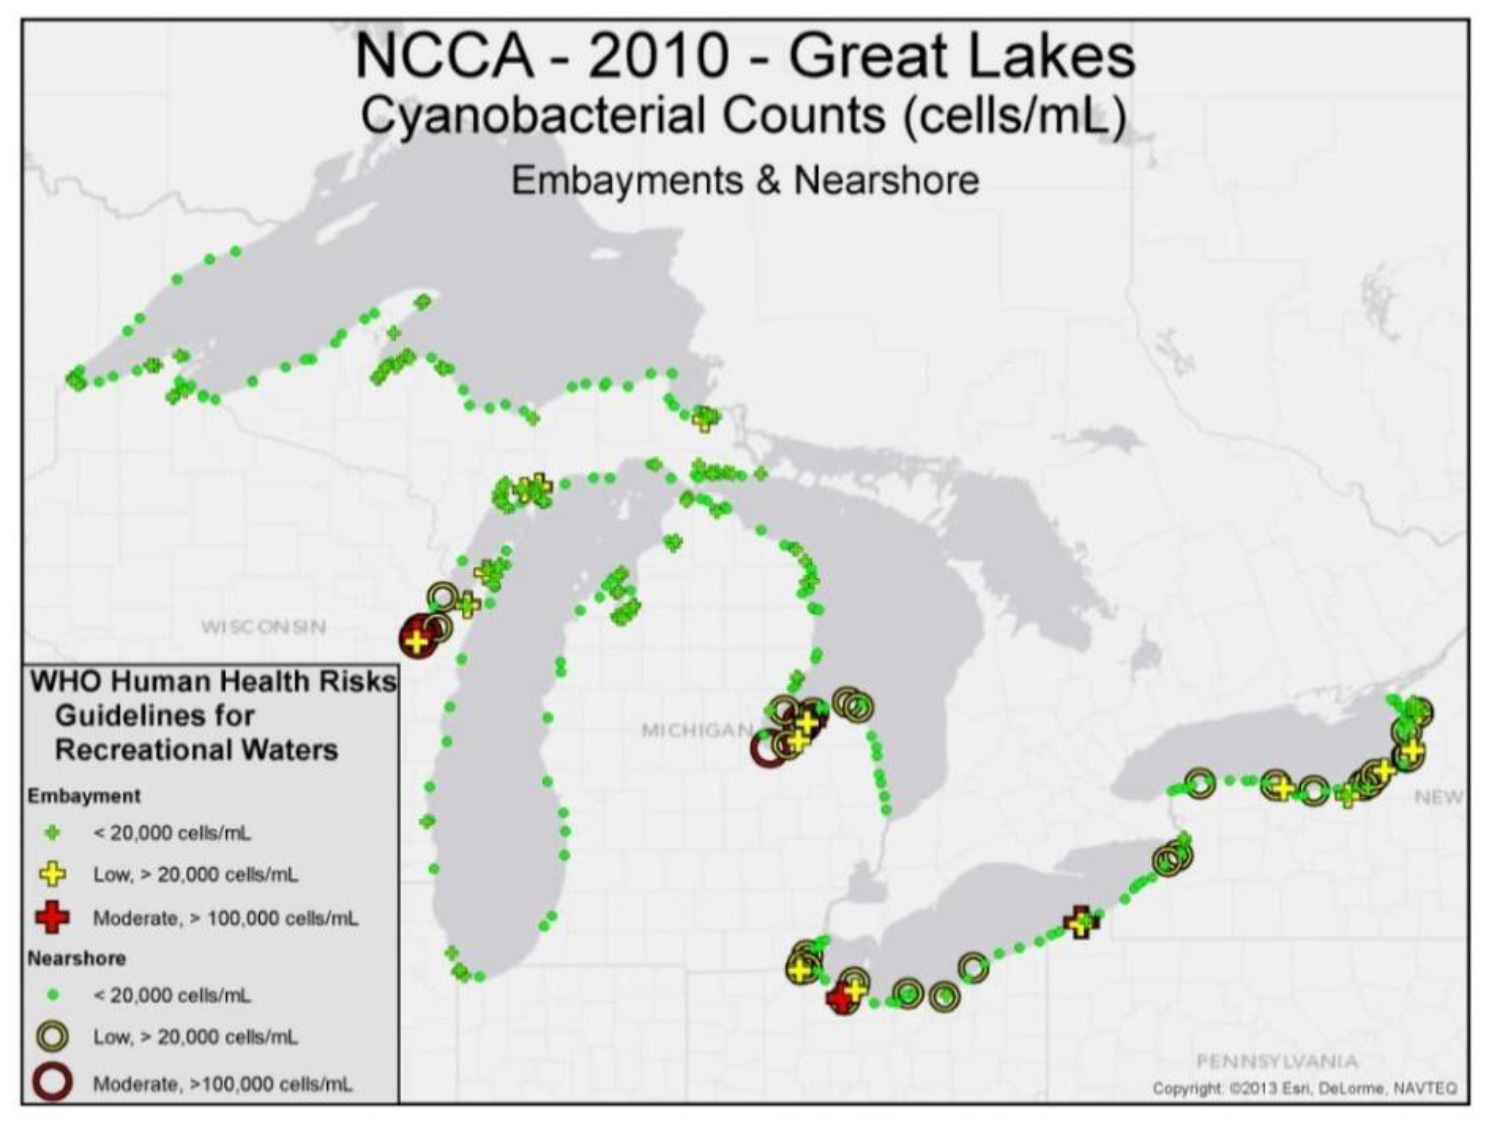 EPA study finds high levels of toxins in Great Lakes fish ... on hudson river, lake erie, map of canada, map of great lakes region, 50 states map great lakes, united states of america, map of us great basin, map of south america, united states map with lakes, in the united states lakes, map of europe, saint lawrence river, lake superior, map of belgium, map of indian ocean, world map of the lakes, lake huron, blank map of the great lakes, lake ontario, pacific ocean, atlantic ocean, map of africa great lakes, lake michigan, map of mediterranean, map of denmark, map of us great plains, manitoulin island, chesapeake bay, caspian sea, map of australia, great lakes region, mackinac island, map showing the great lakes, appalachian mountains, map of scandinavia, mississippi river, map of great lake states,